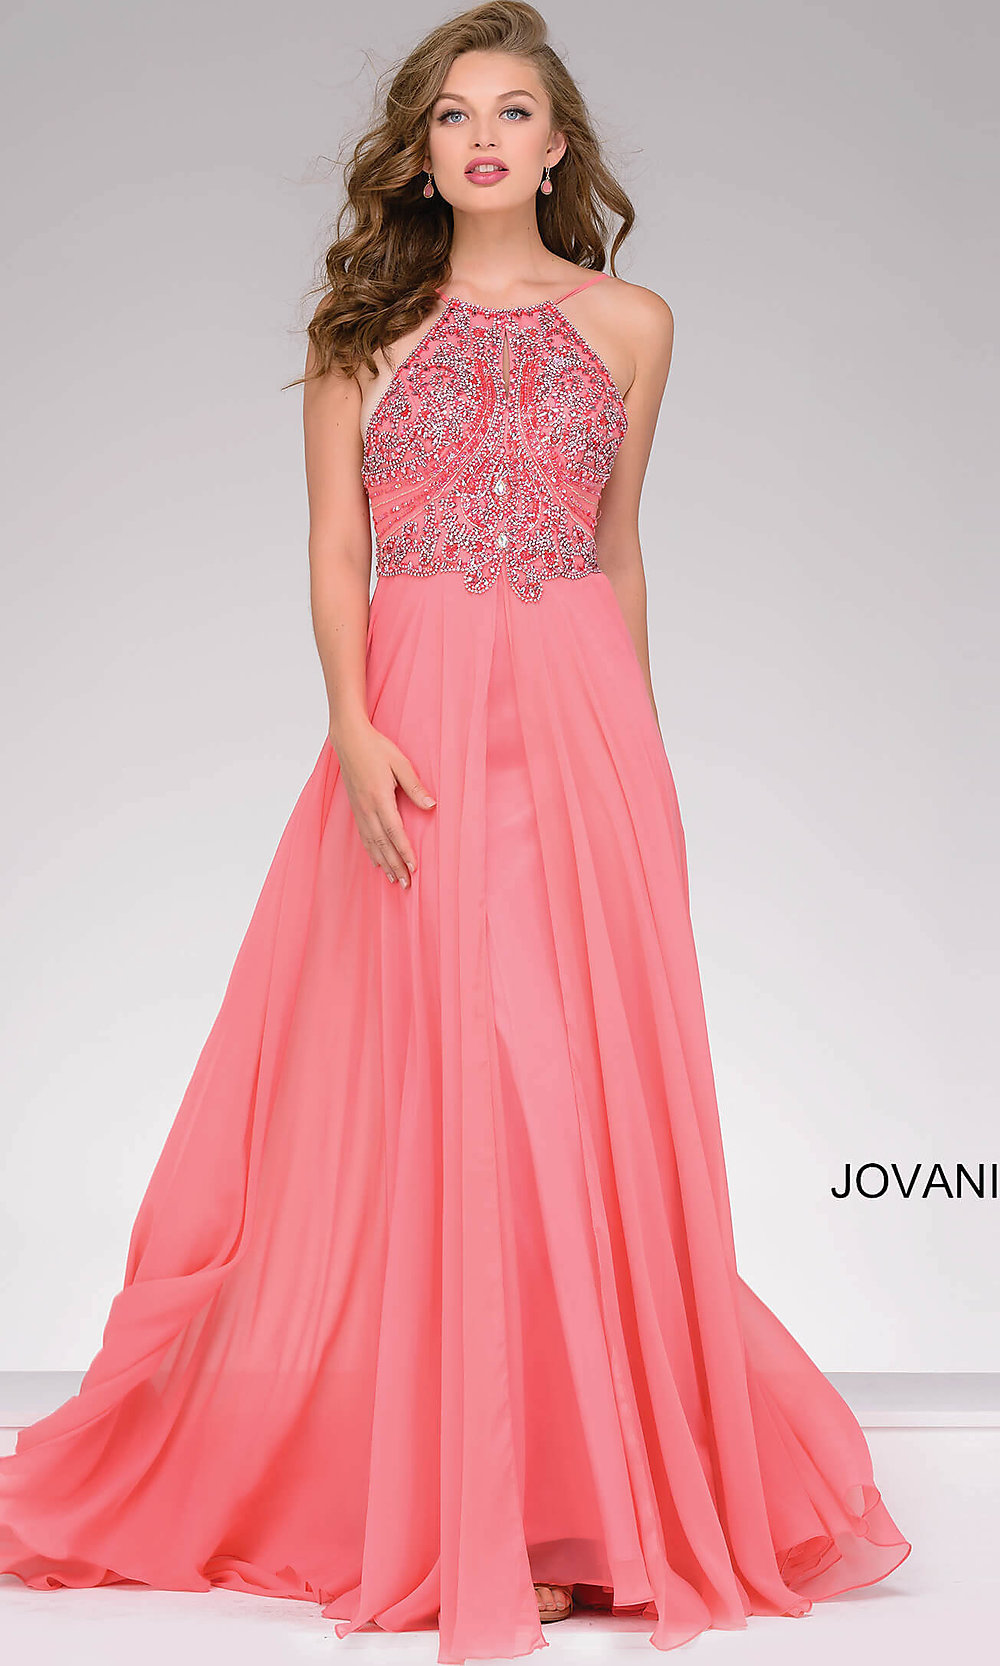 High Neck Beaded Top Jovani Prom Dress-PromGirl